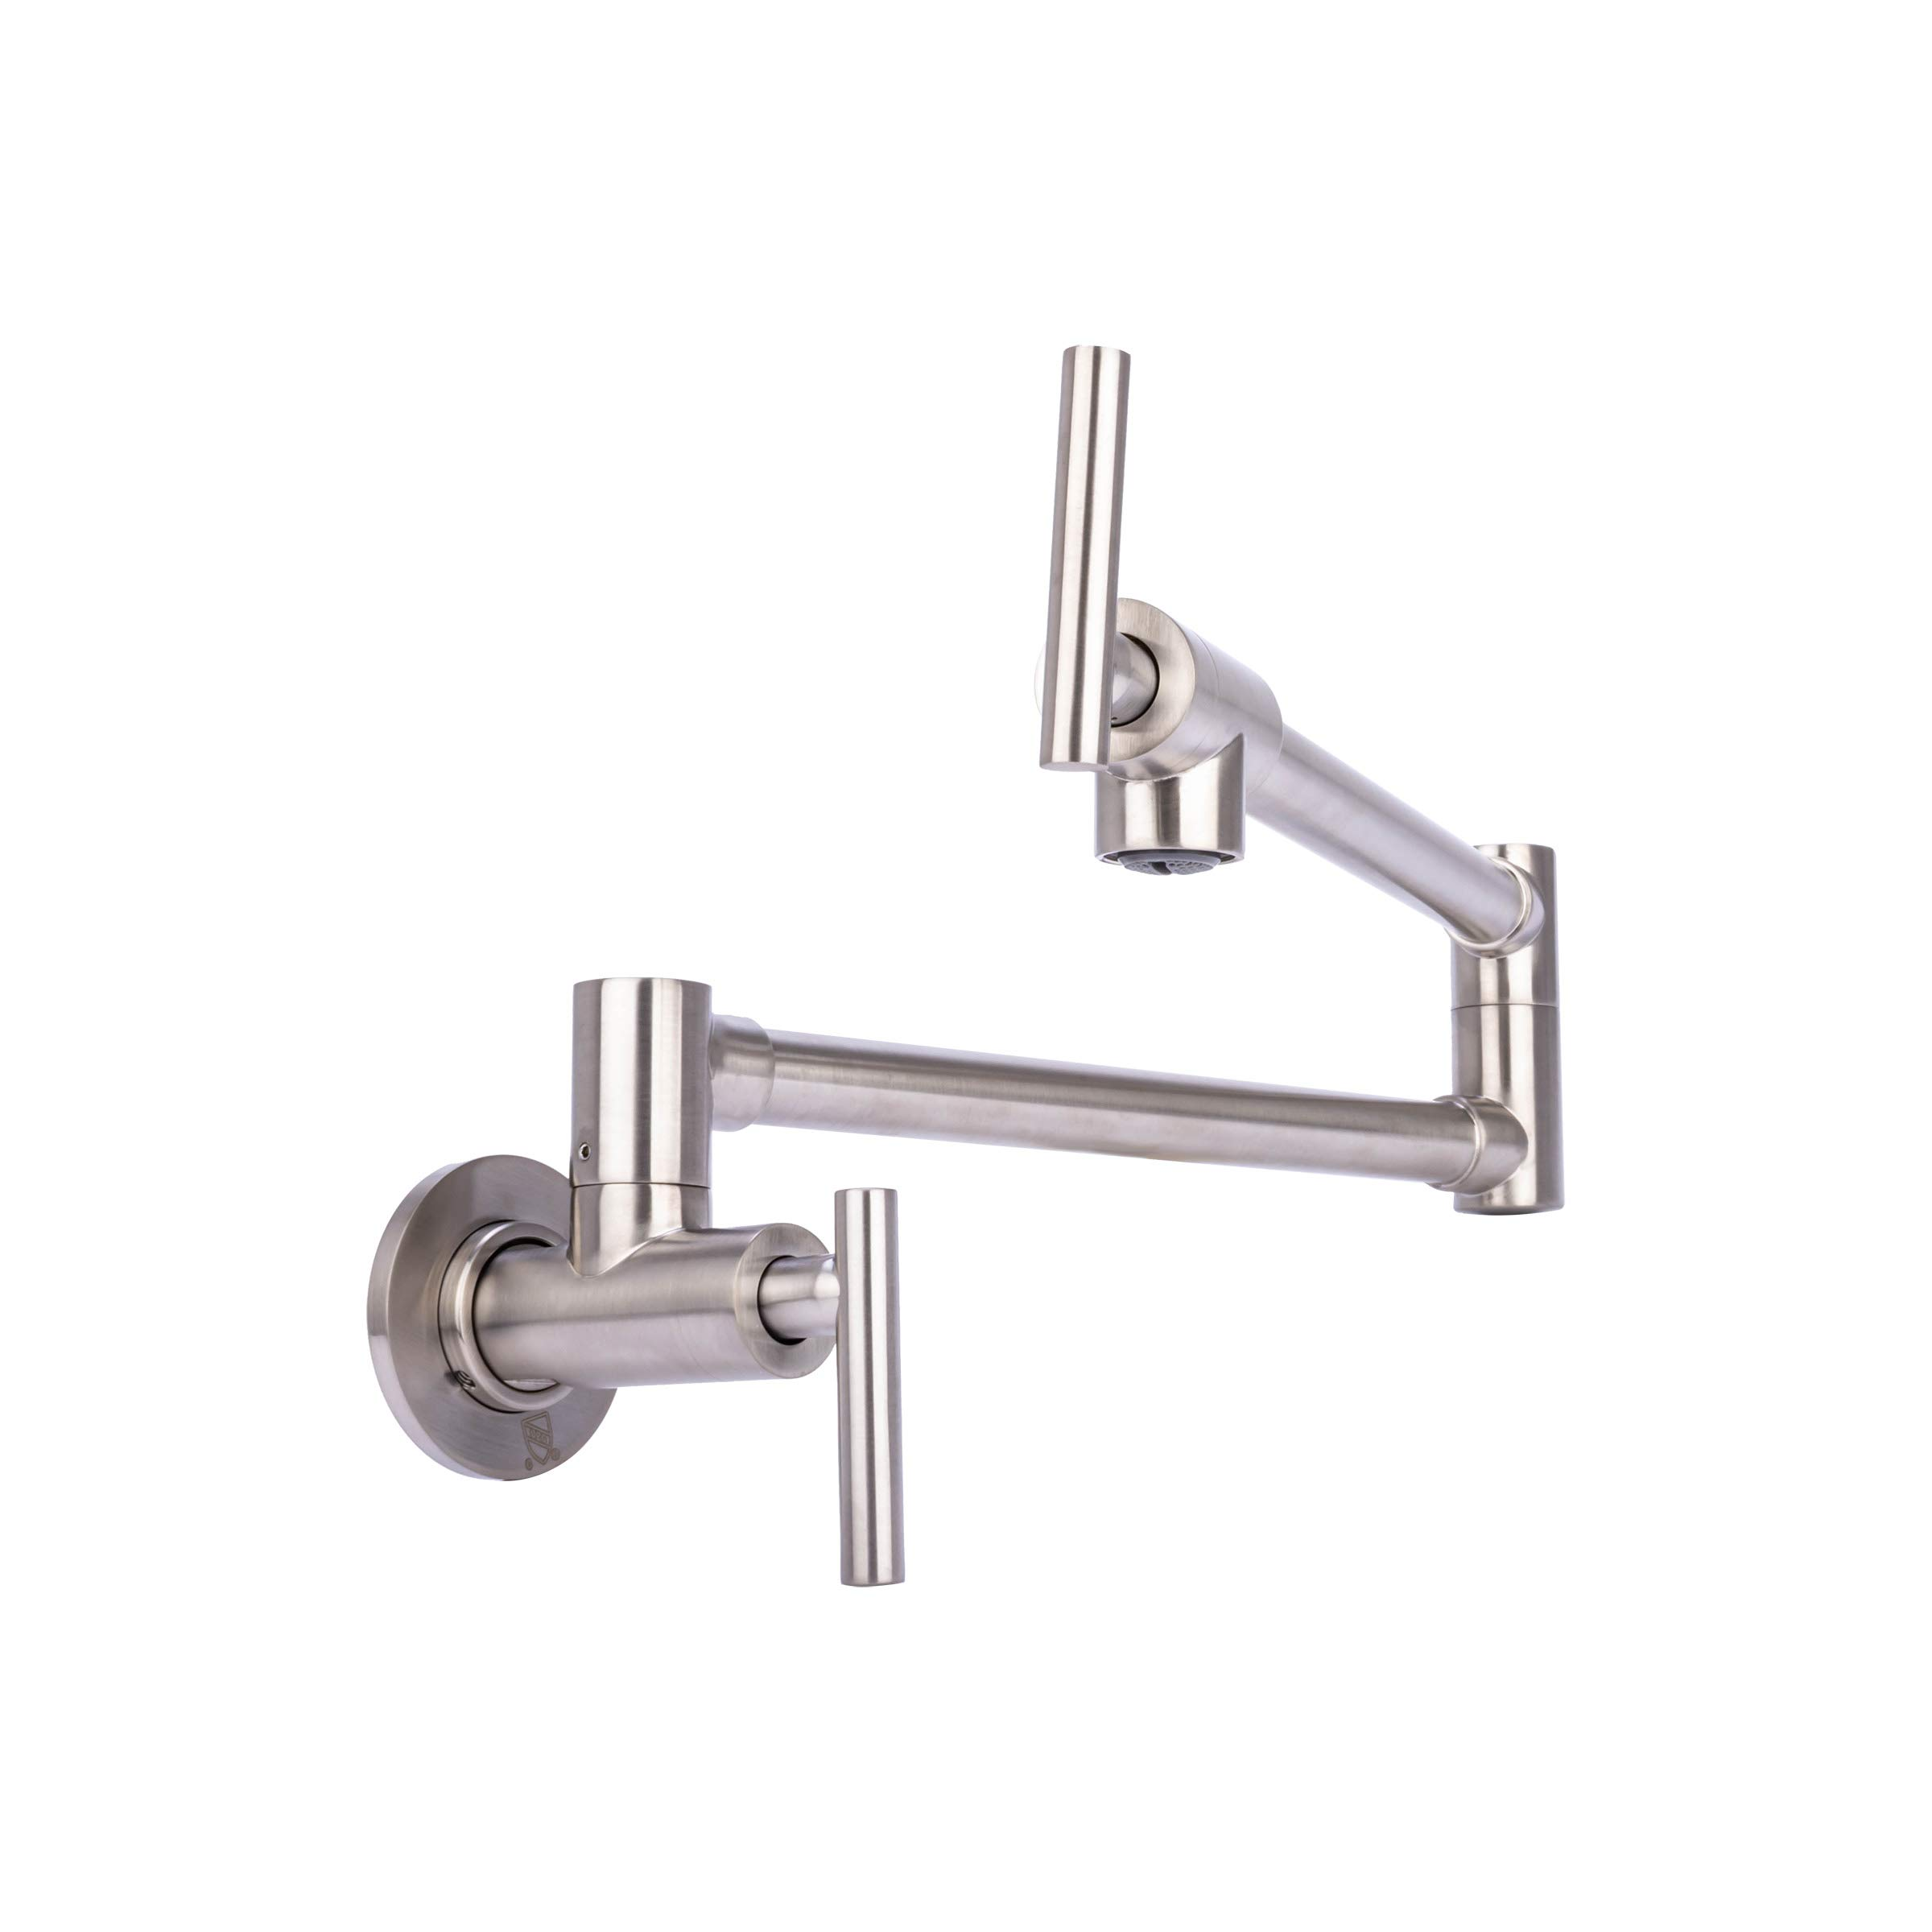 Brienza by Italia, K62202-BN, Contemporary Pot Filler Kitchen Faucet in Brushed Nickel by Brienza by Italia (Image #2)